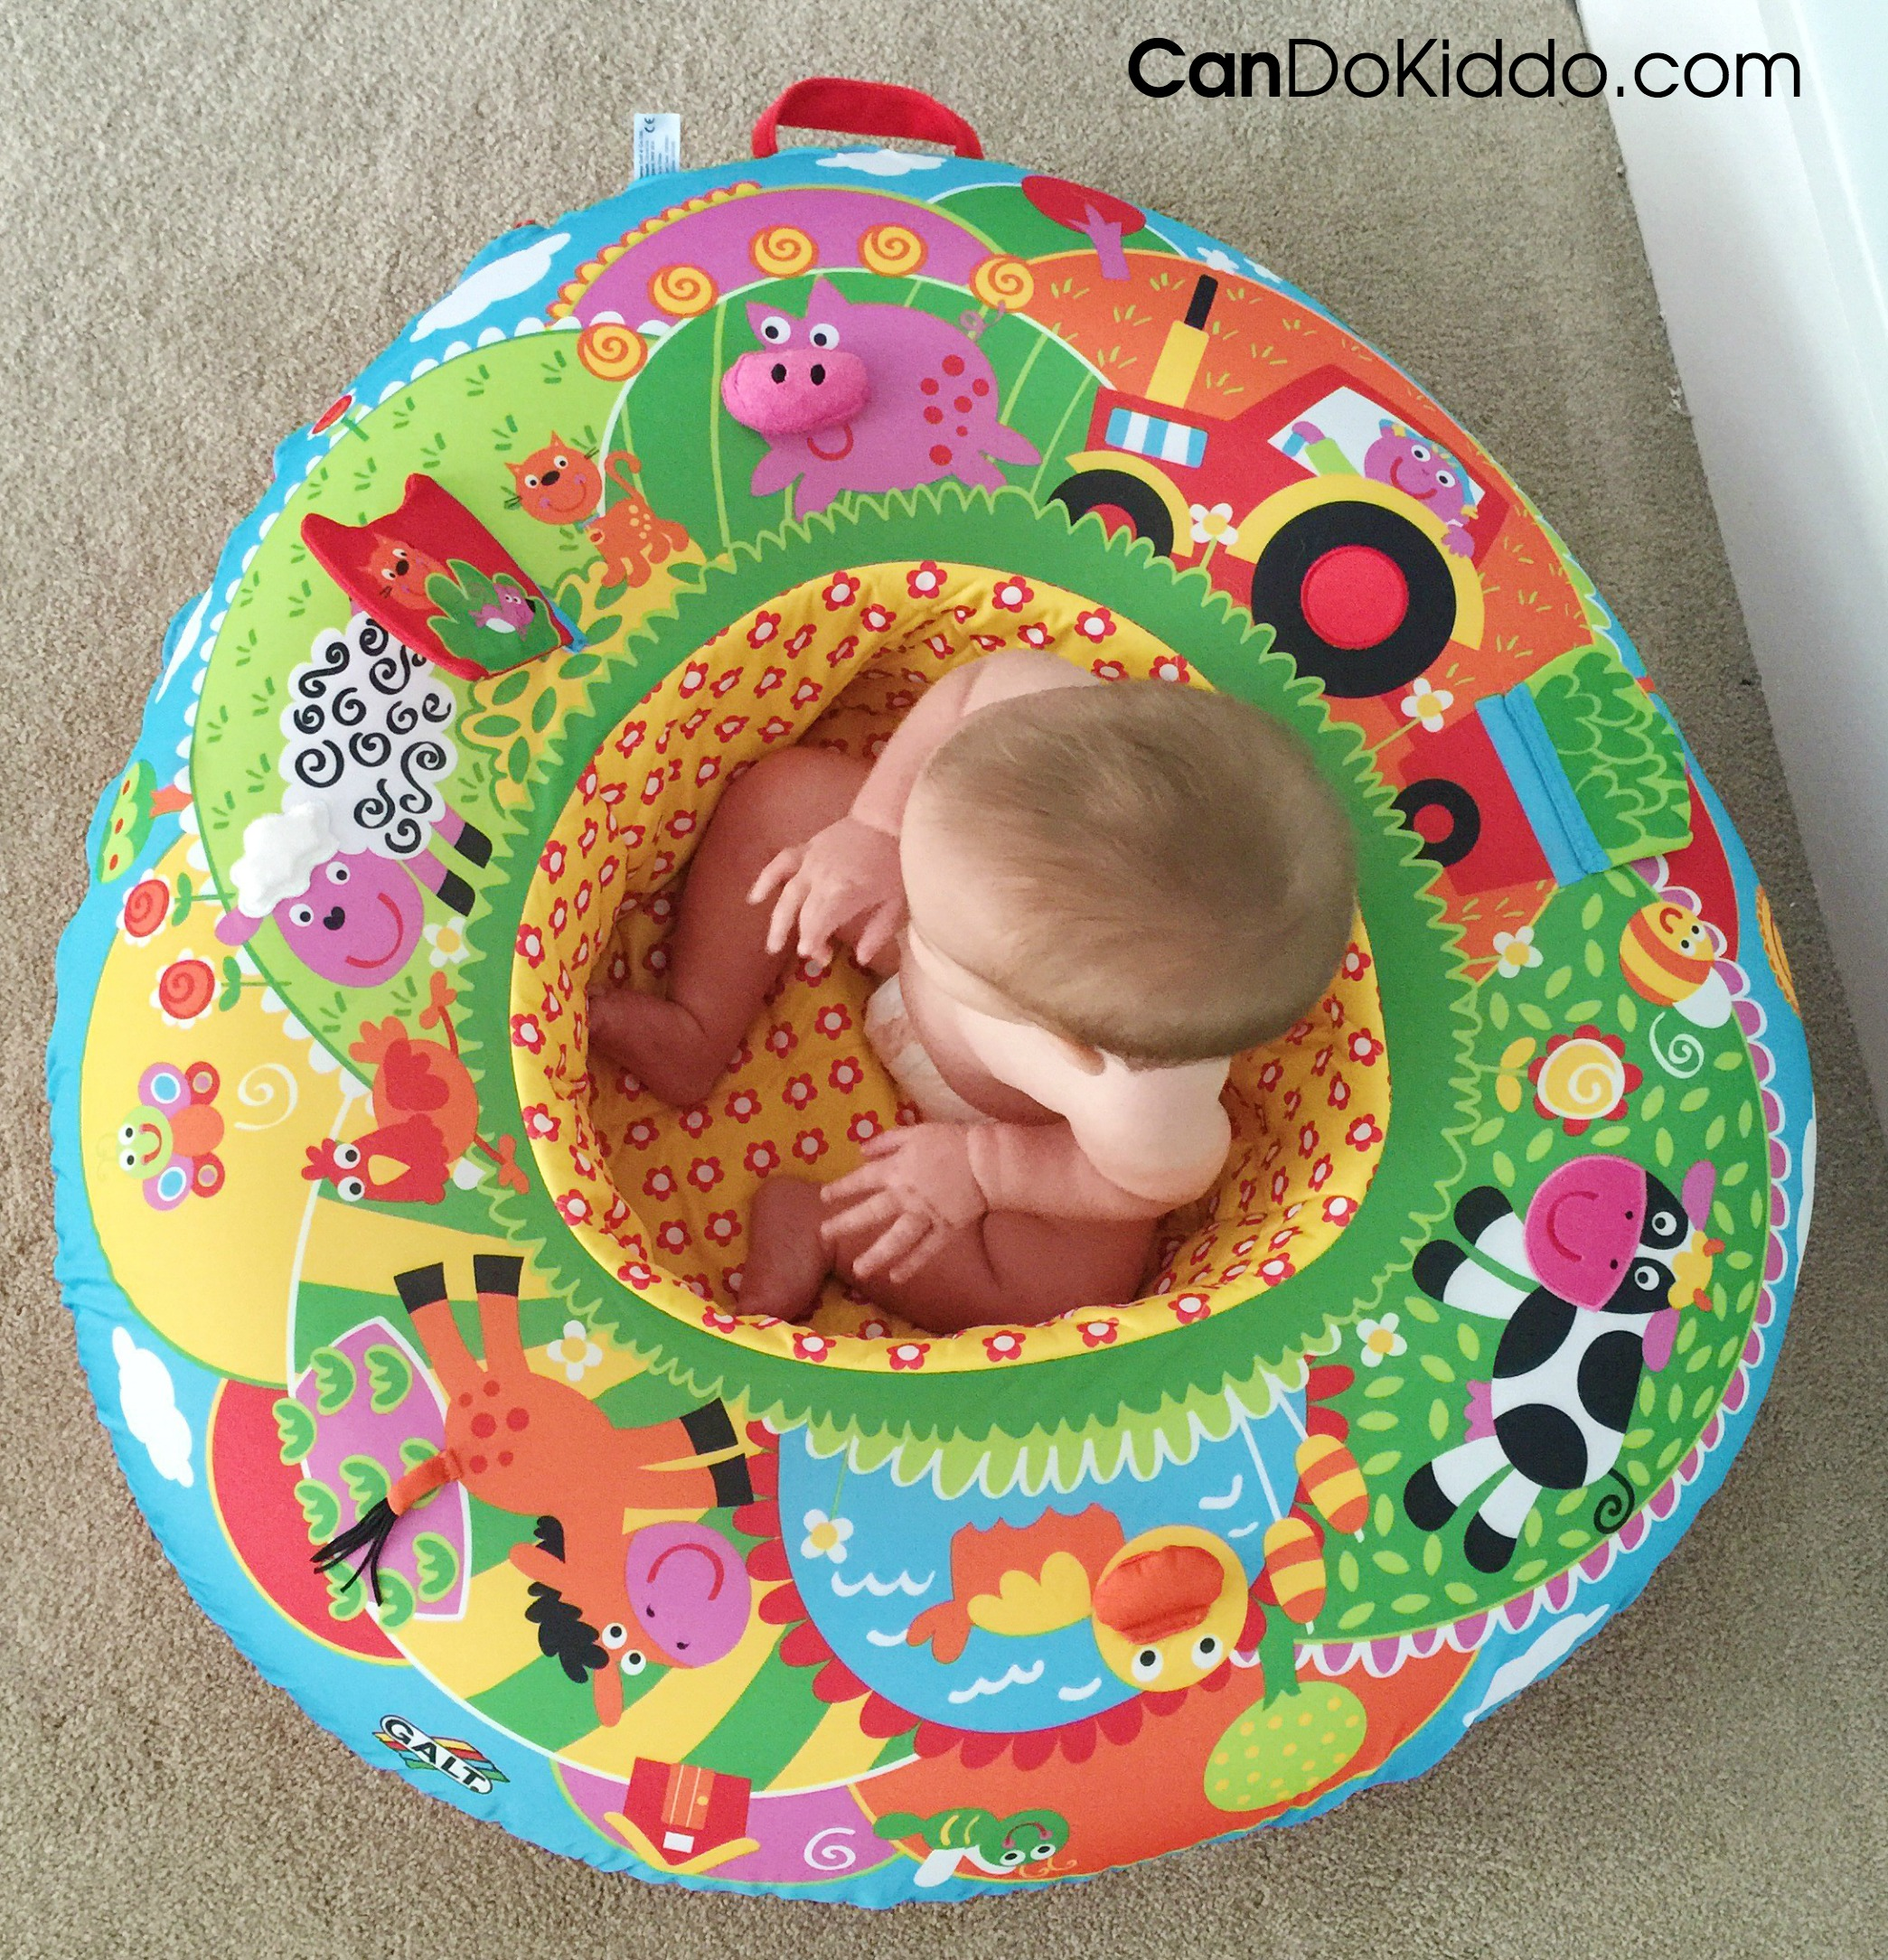 A great choice for a baby seat. CanDoKiddo.com